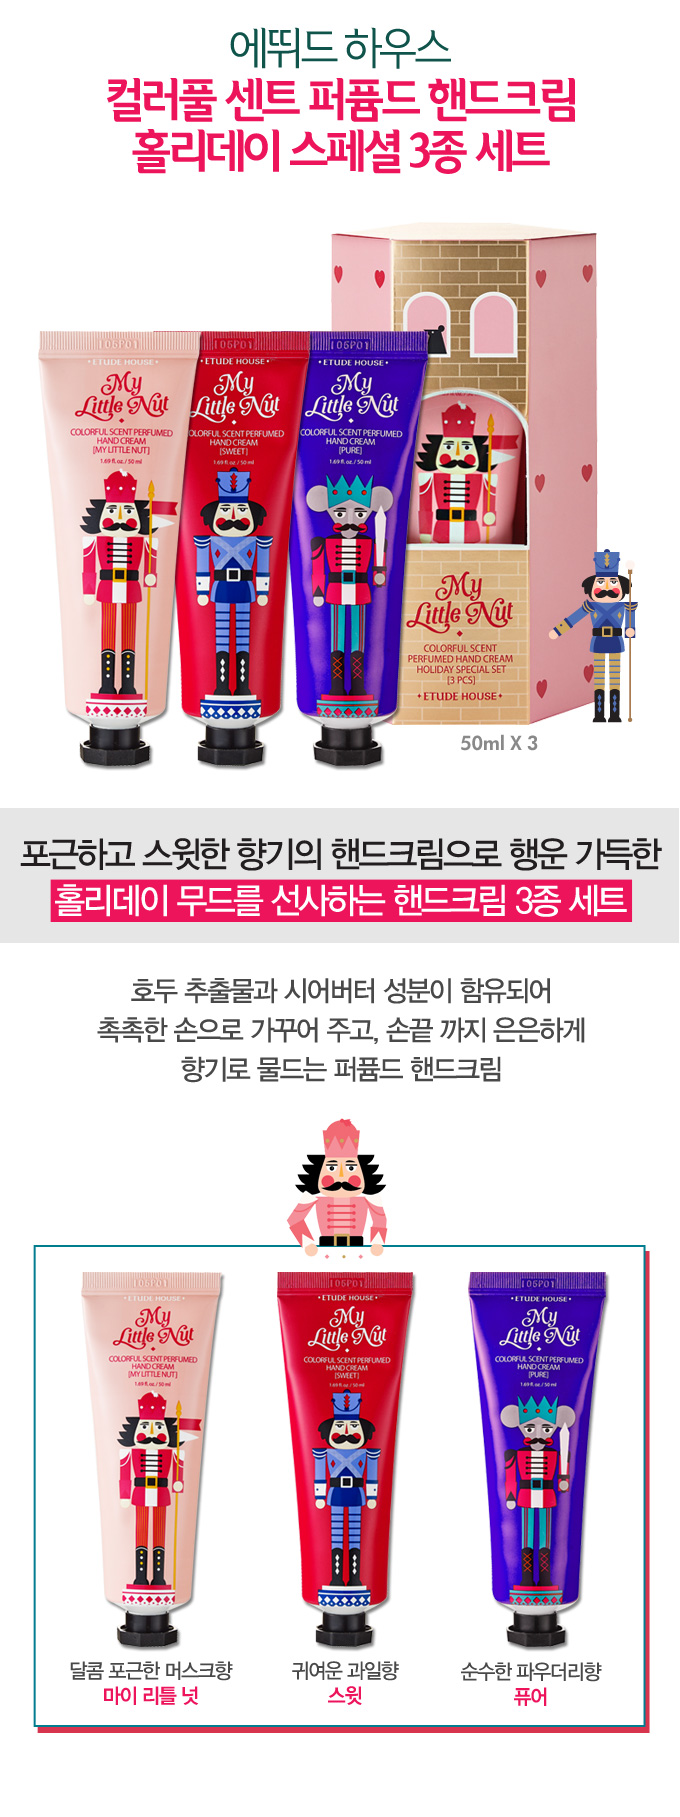 etude-house-my-little-nut-colorful-scent-perfume-hand-cream-set-1.jpg